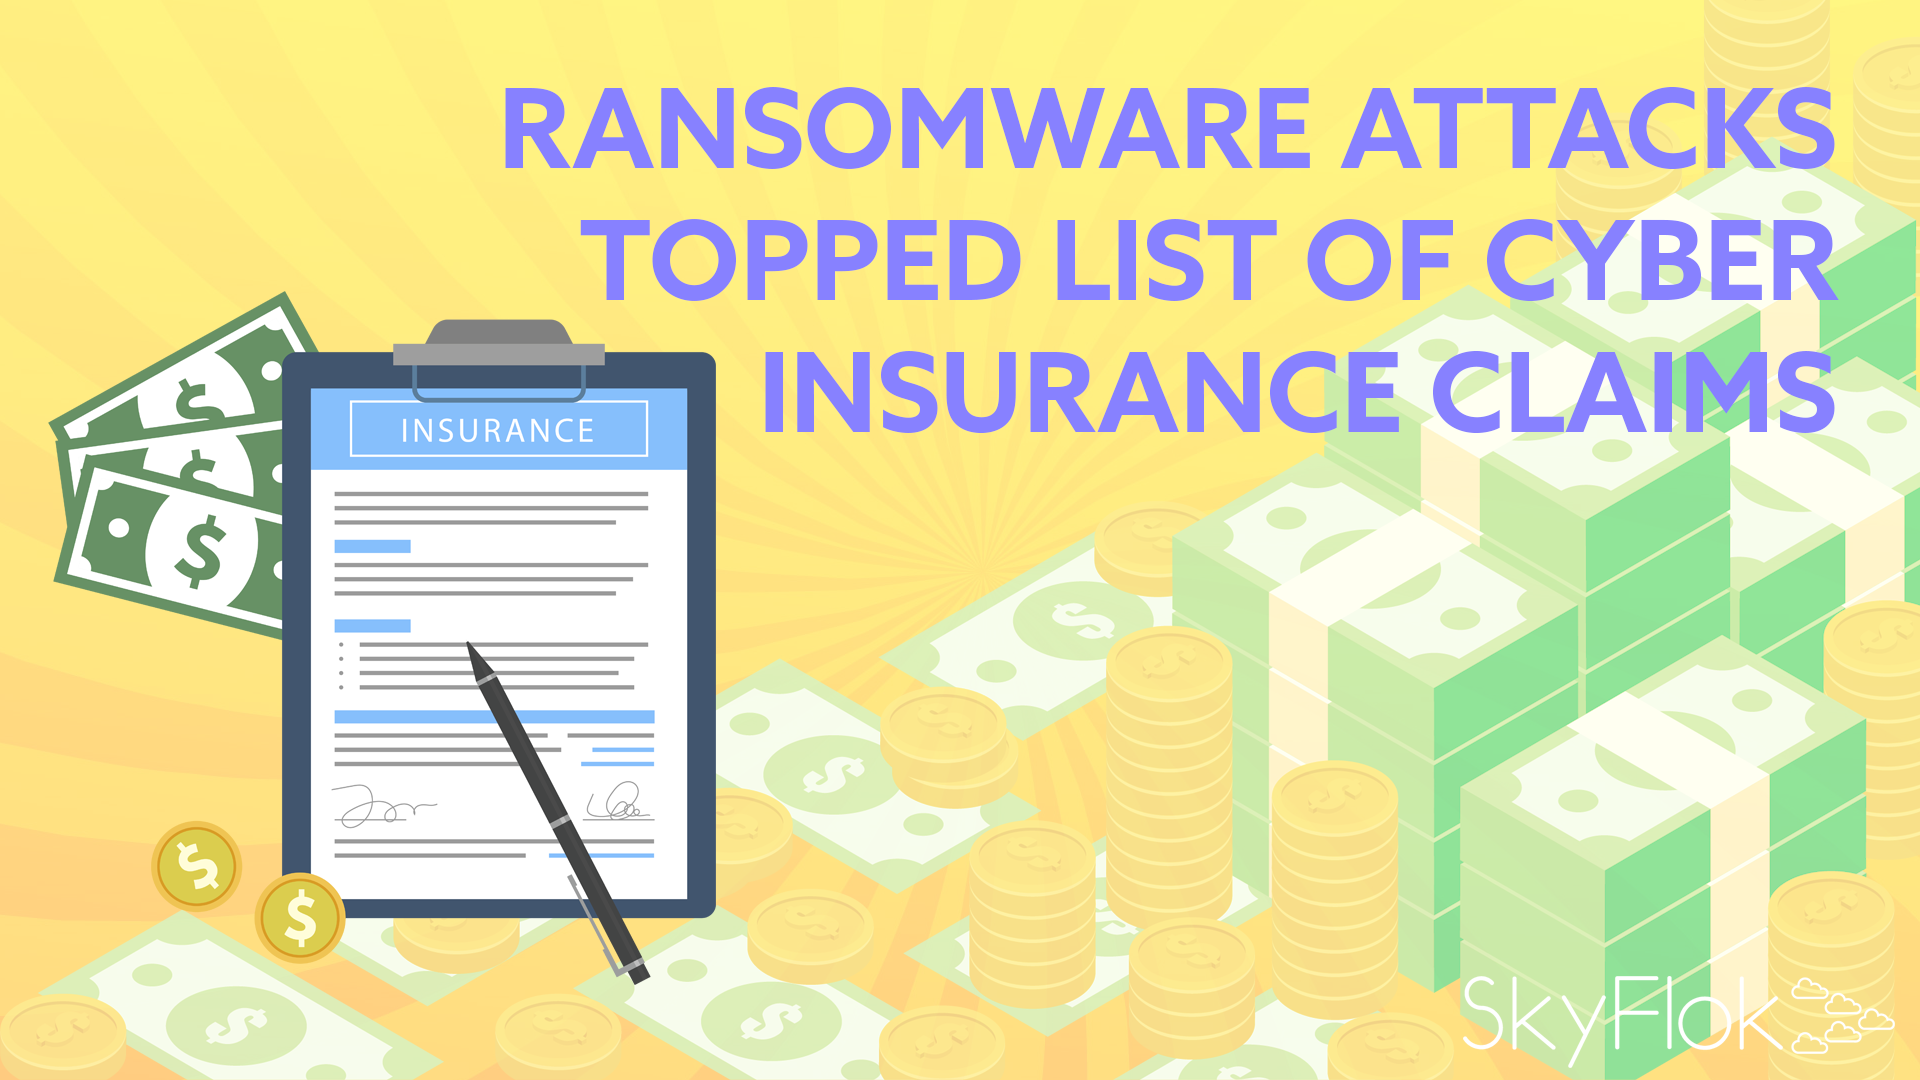 Ransomware Attacks Topped List of Cyber Insurance Claims